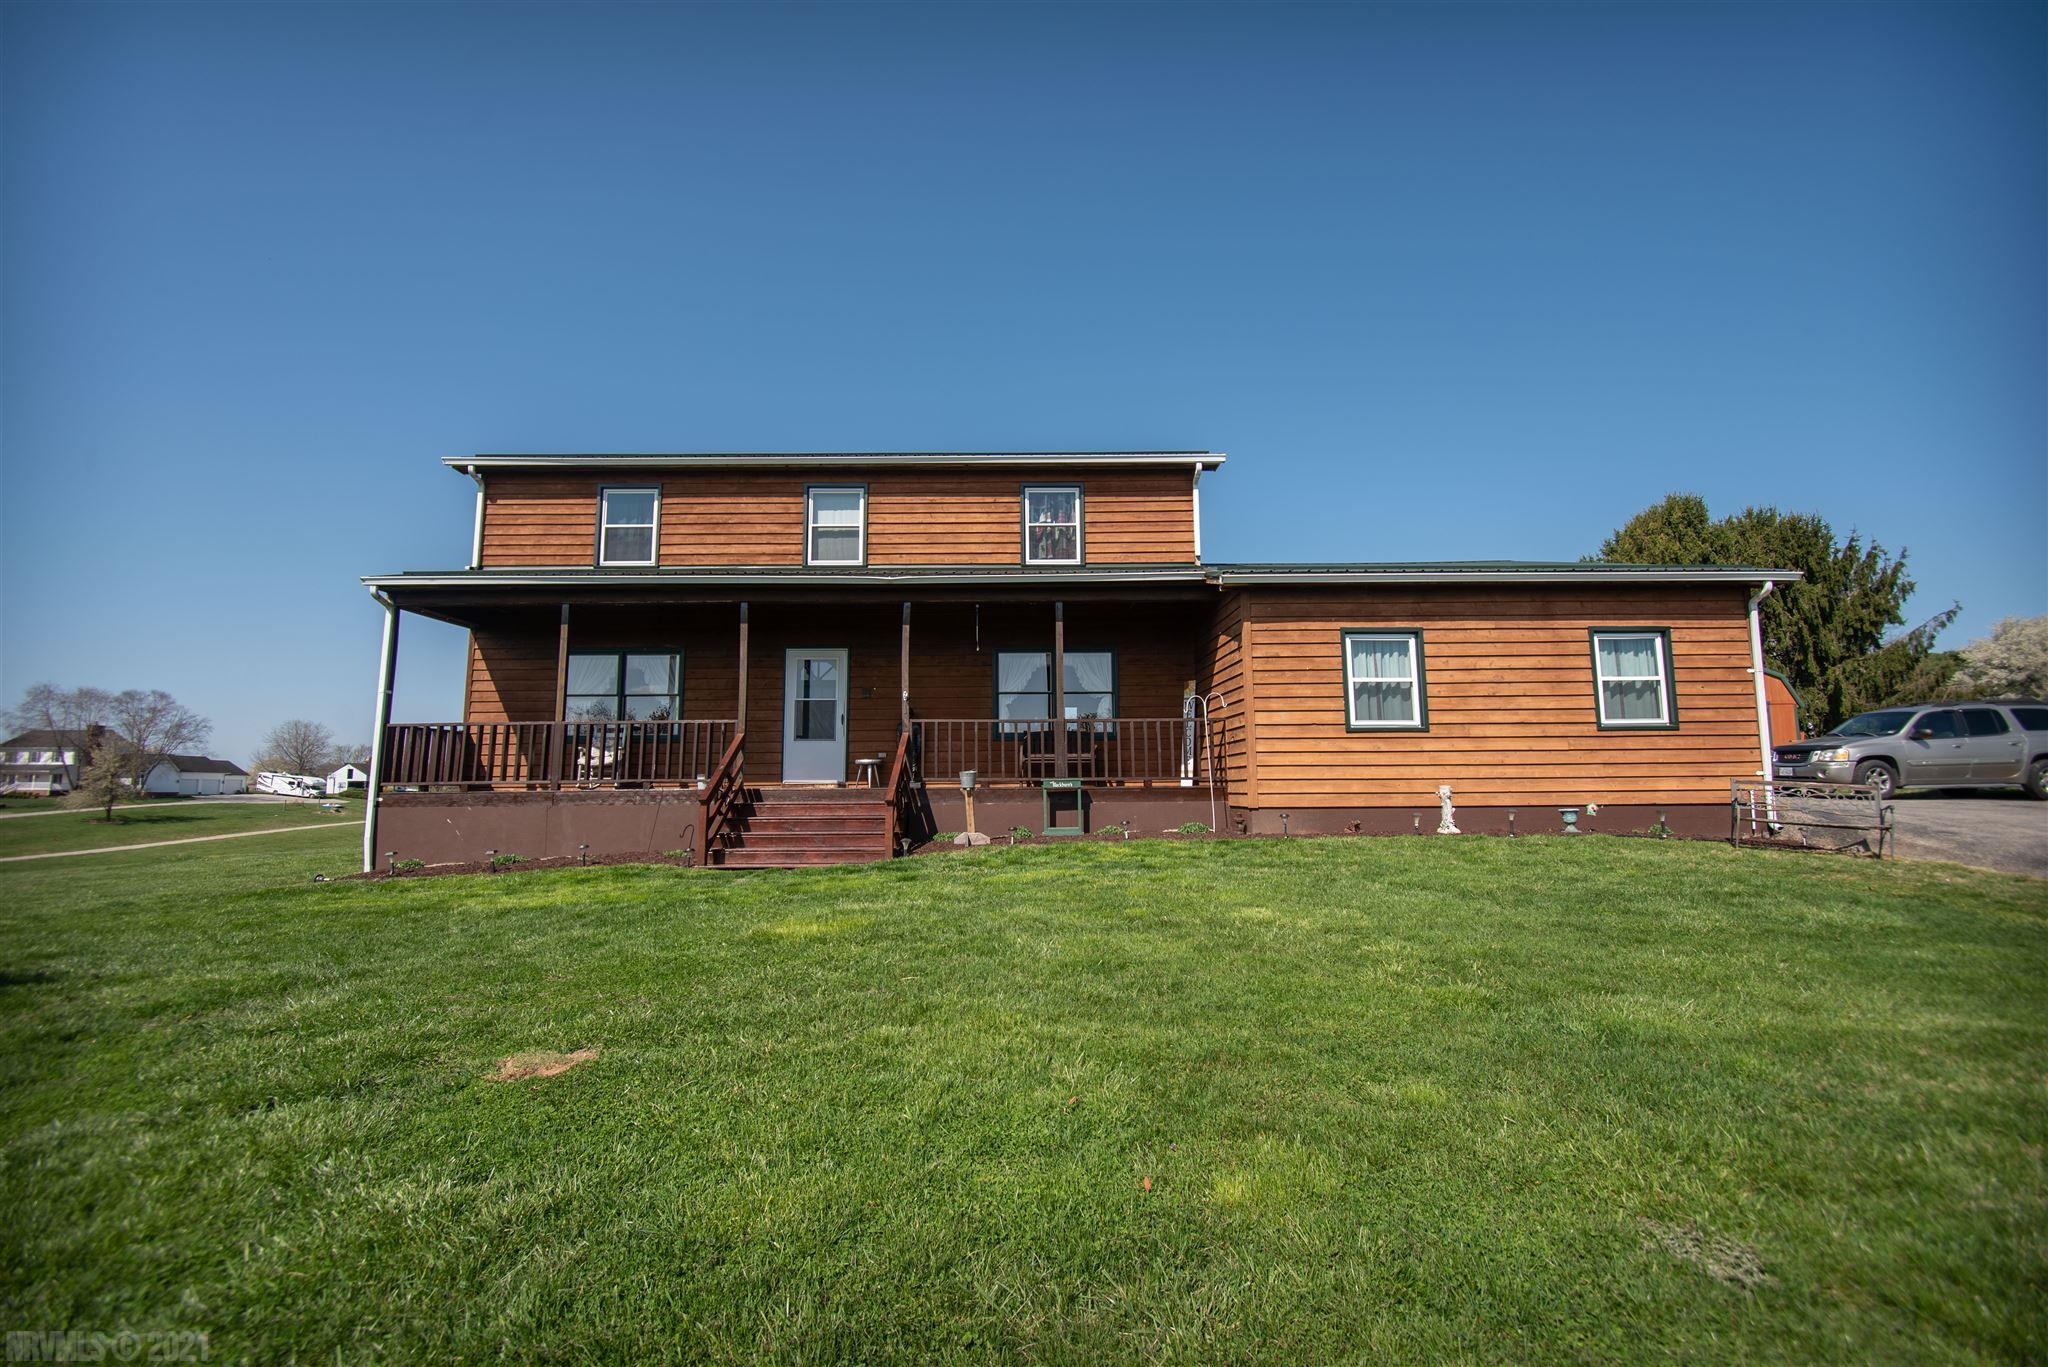 Enjoy the privacy and serenity this 4 bedroom 2.5 bathroom home has to offer. This one owner home has beautiful views from all 3 covered porches, 5.62 acres with endless possibilities, spacious rooms and so much more. Come see for yourself!